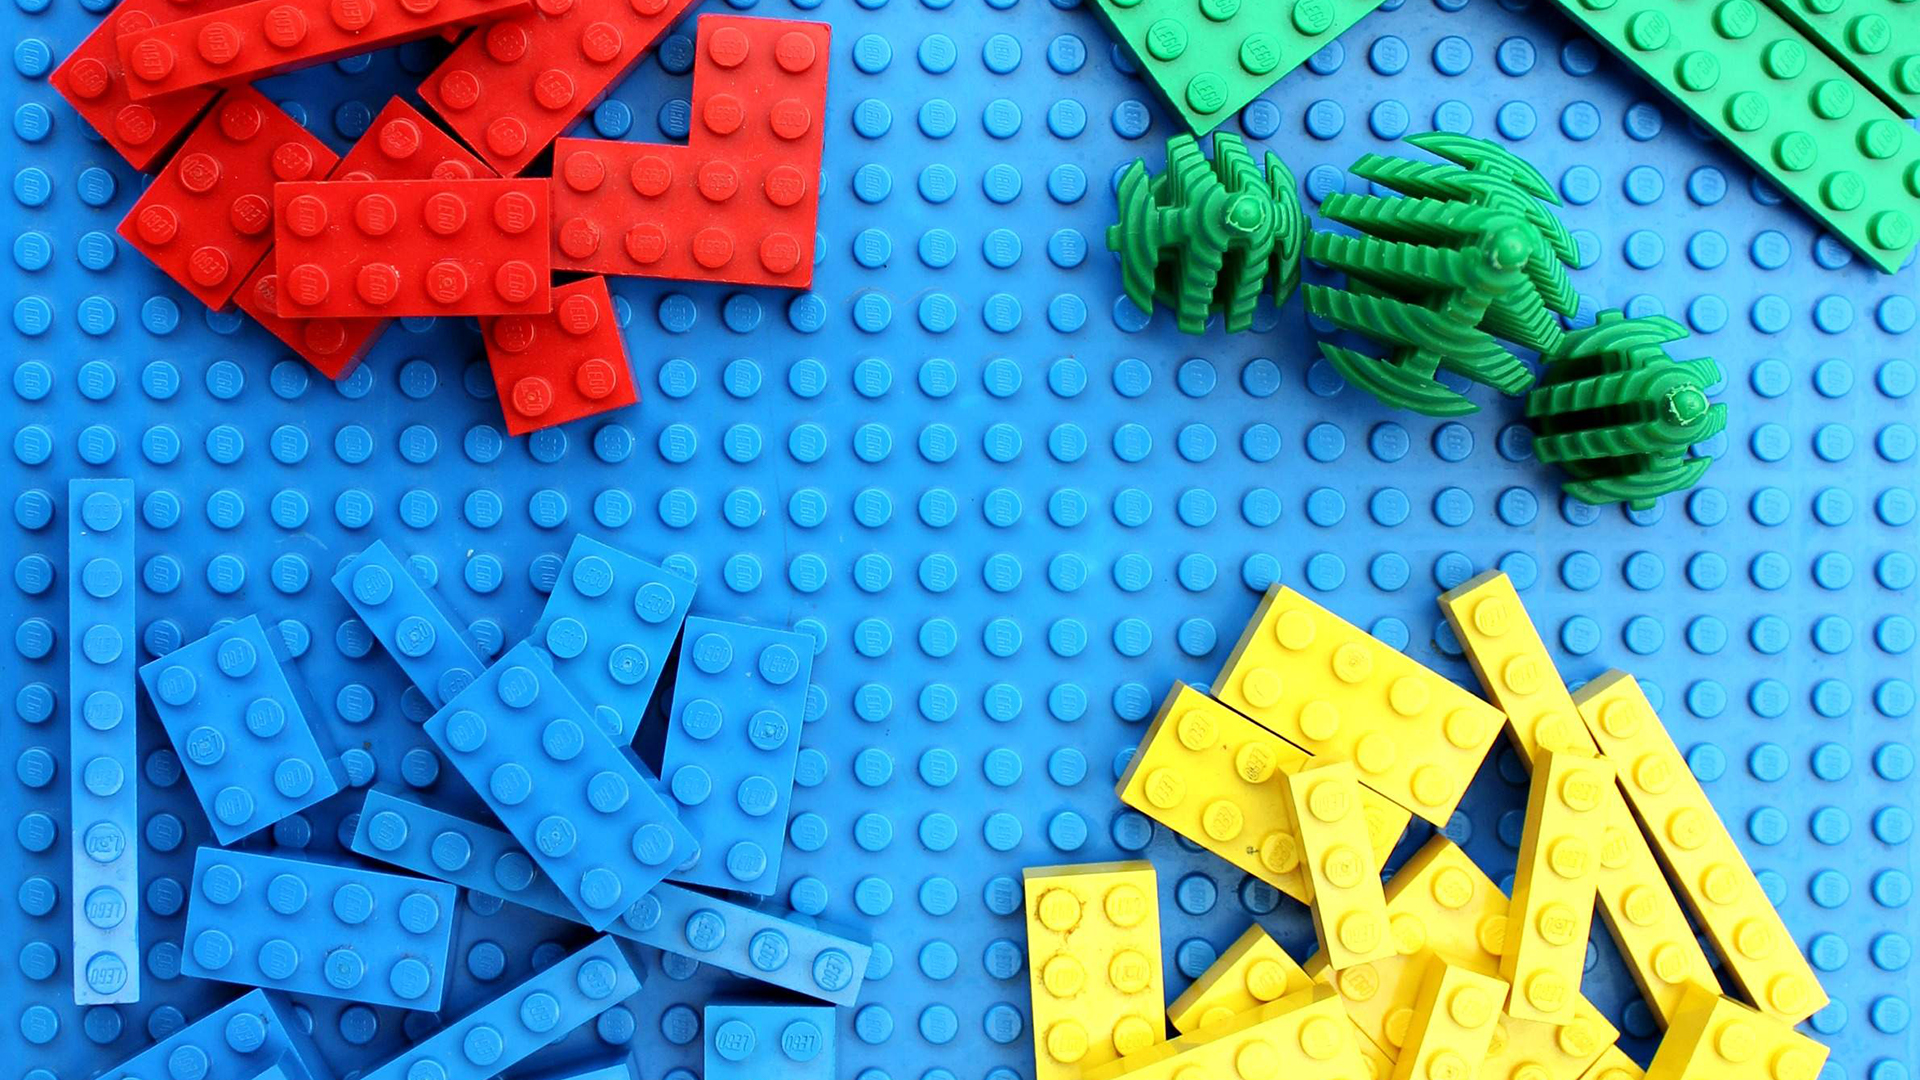 lego blocks stacked in piles by color